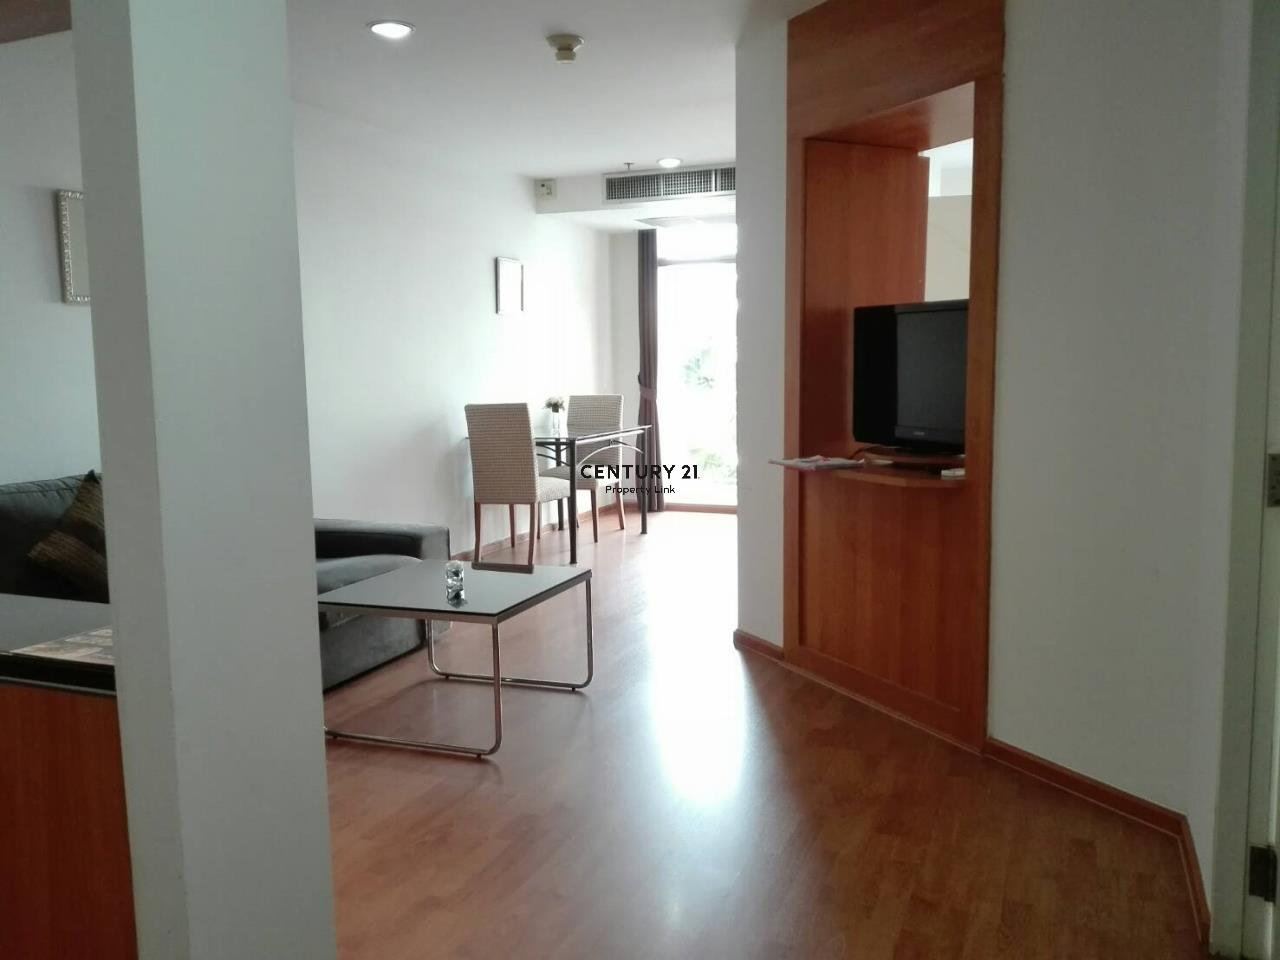 Century21 Property Link Agency's 37-CC-61479 Capital Apartment for Rent 3